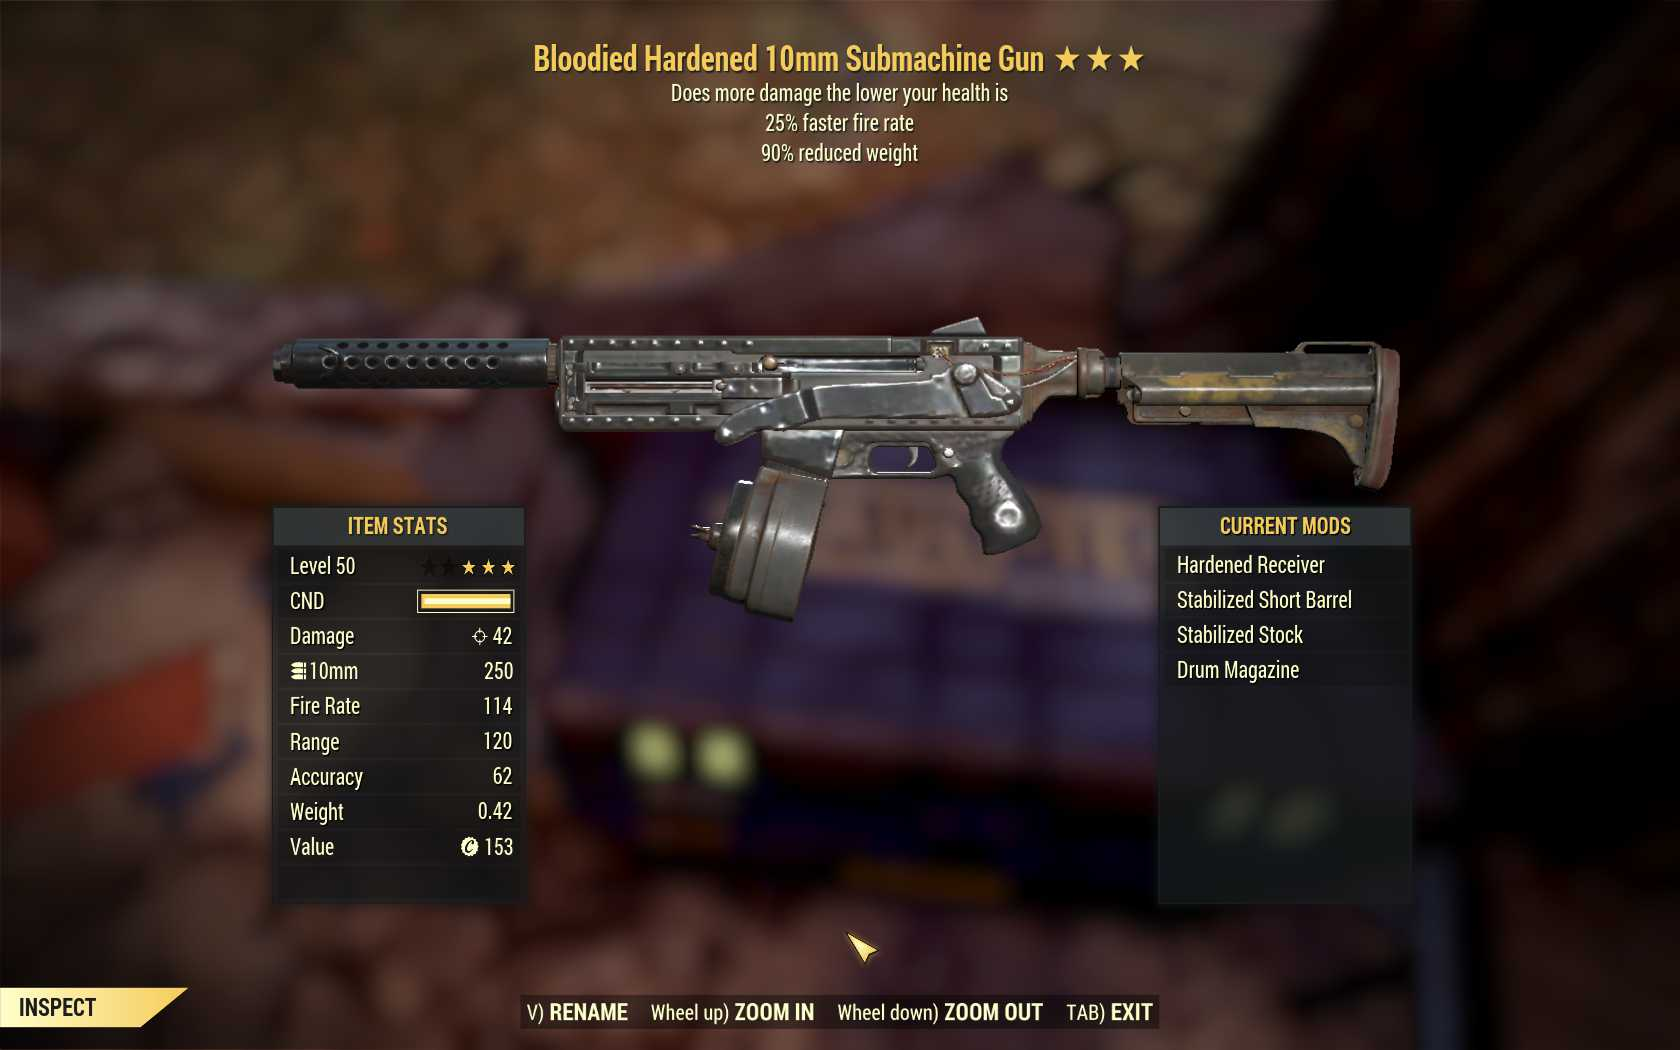 [3 Stars]Bloodied 10mm Submachine Gun+25% faster fire rate+90% reduced weight